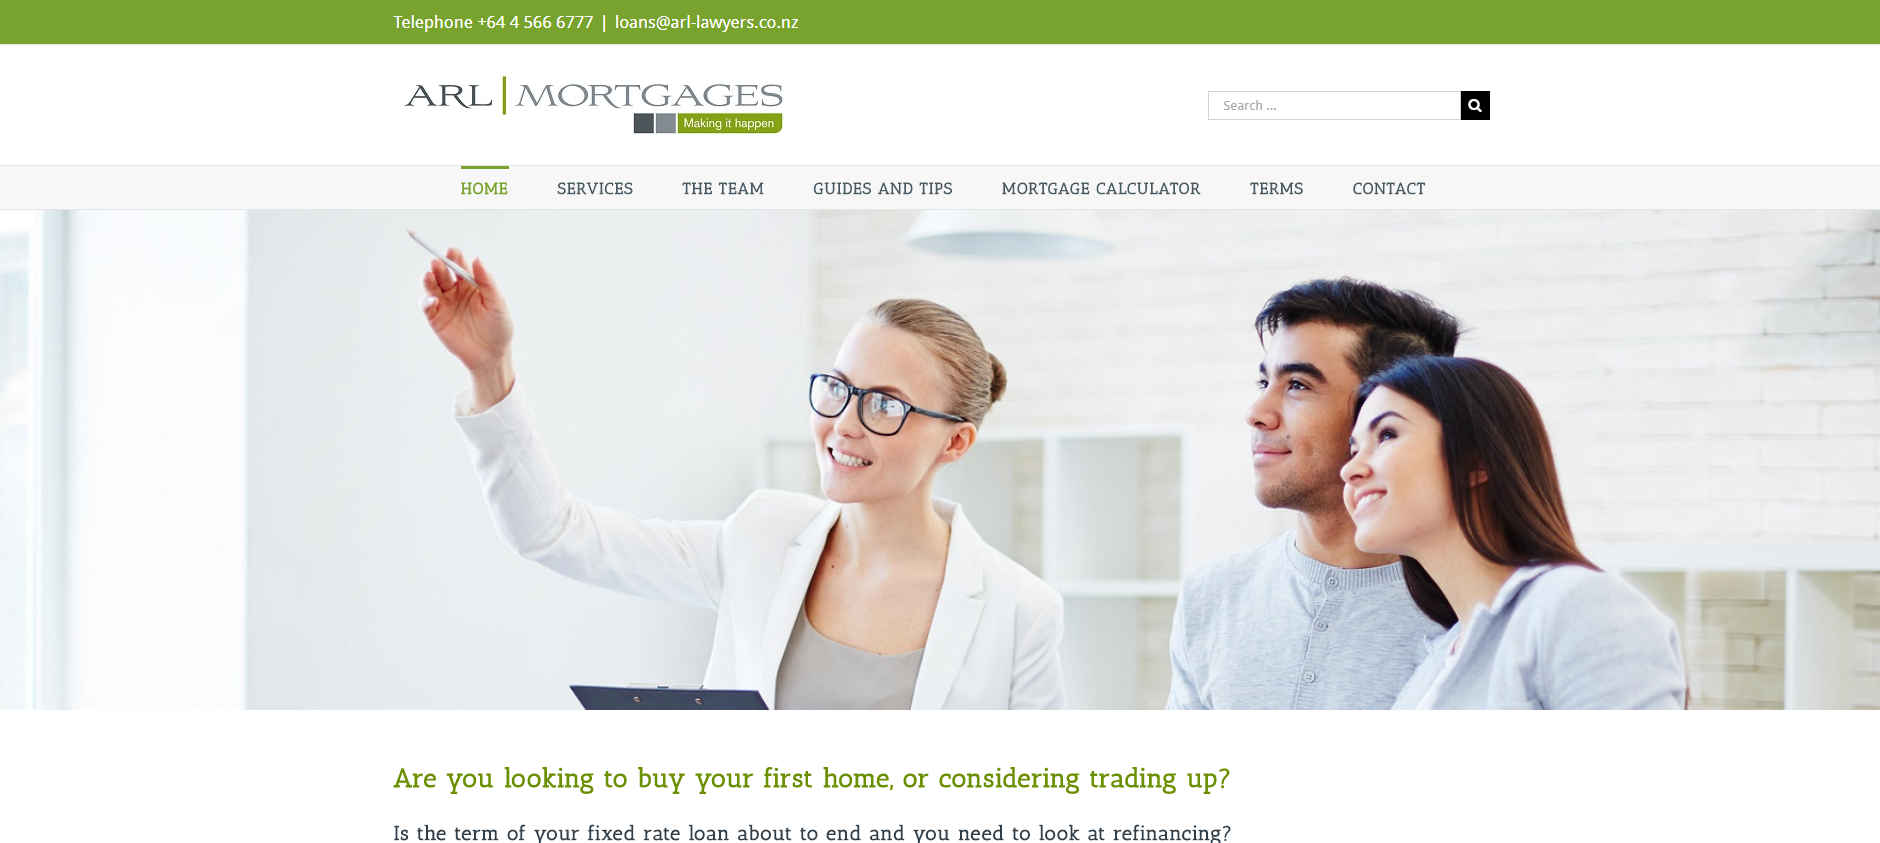 ARL Mortgages